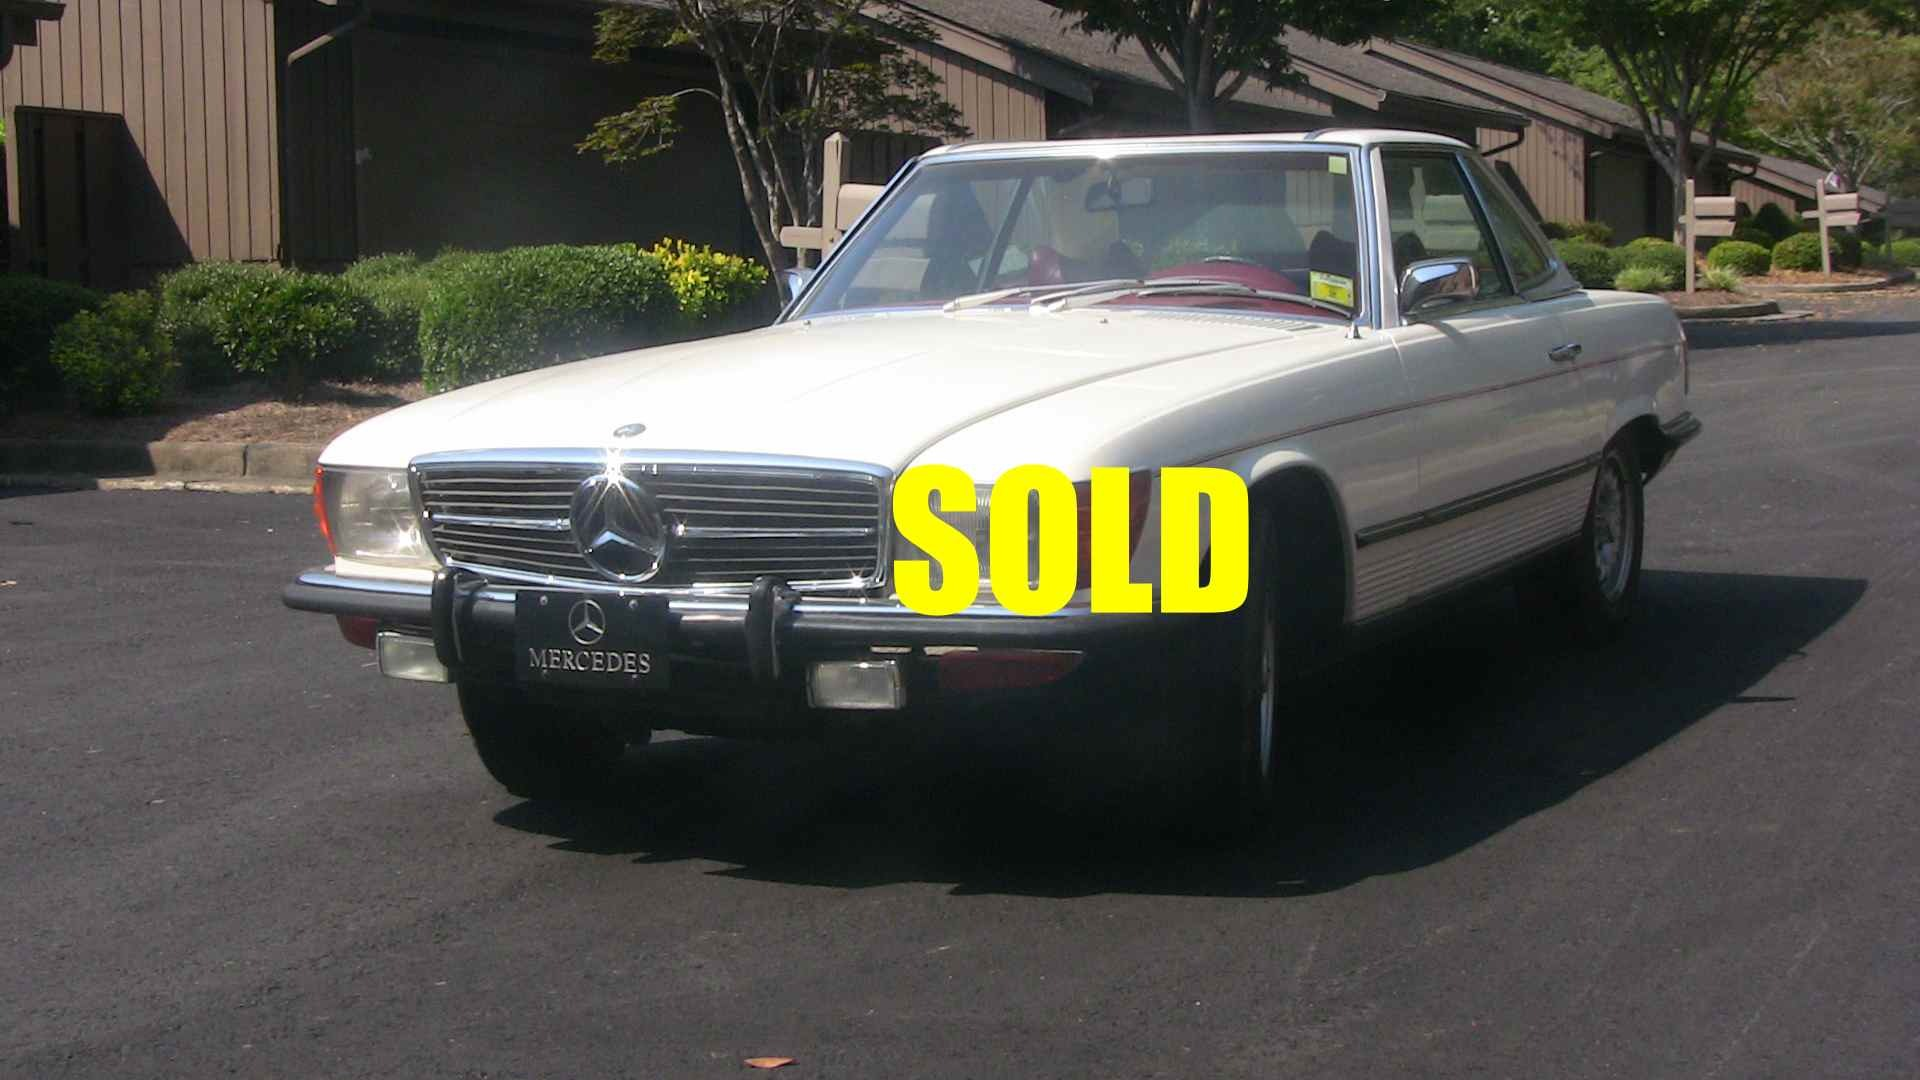 Used 1973 Mercedes Benz 450 SL , For Sale $15500, Call Us: (704) 996-3735